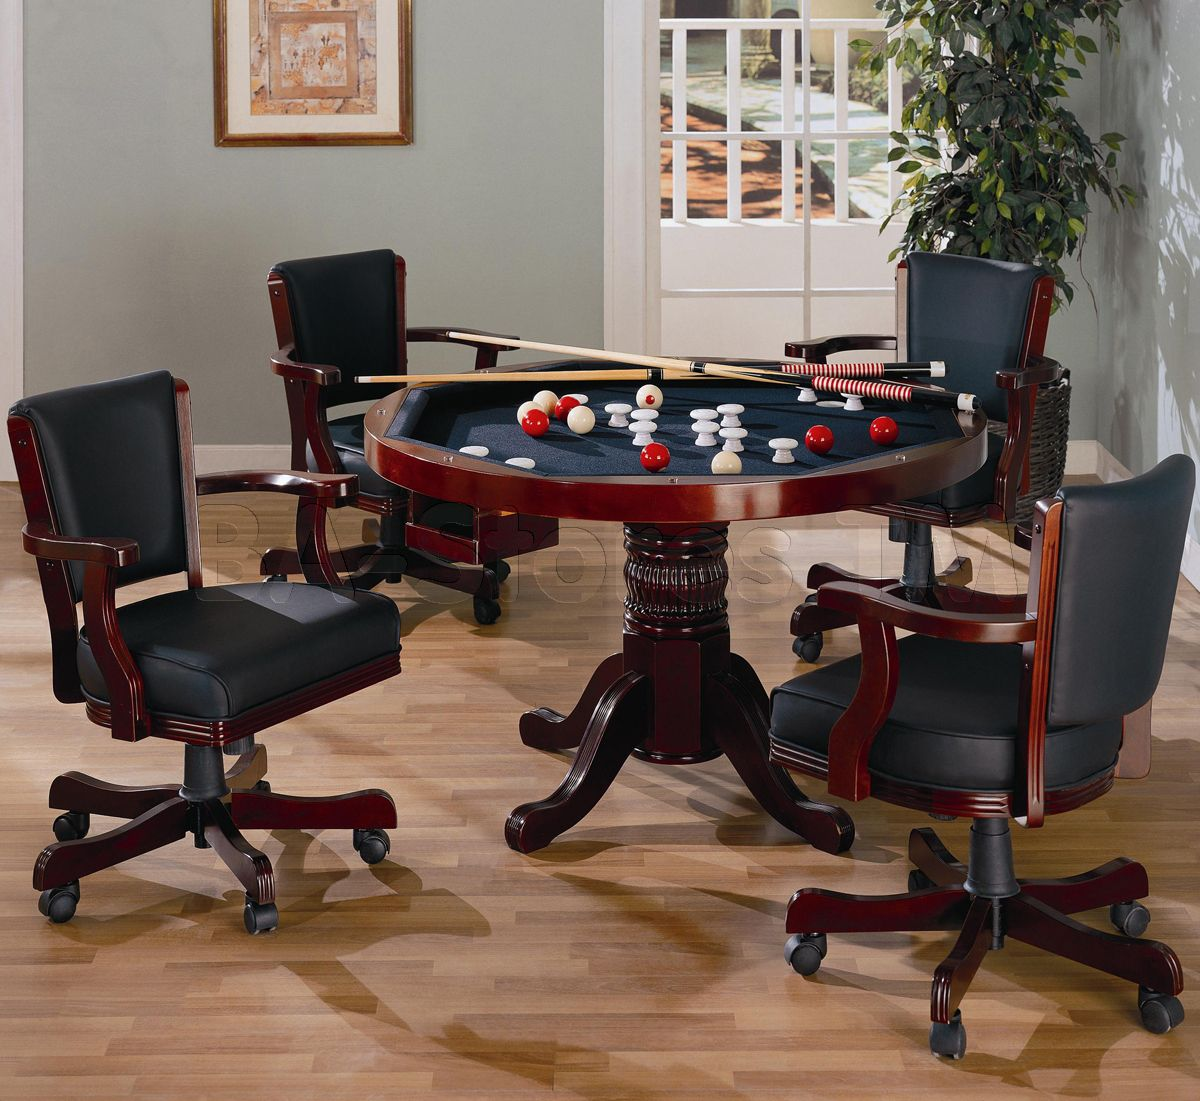 Mitchell 5 Pcs Set In Cherry Game Table And 4 Chairs Coaster Co Game Room Tables Bumper Pool Table Bumper Pool